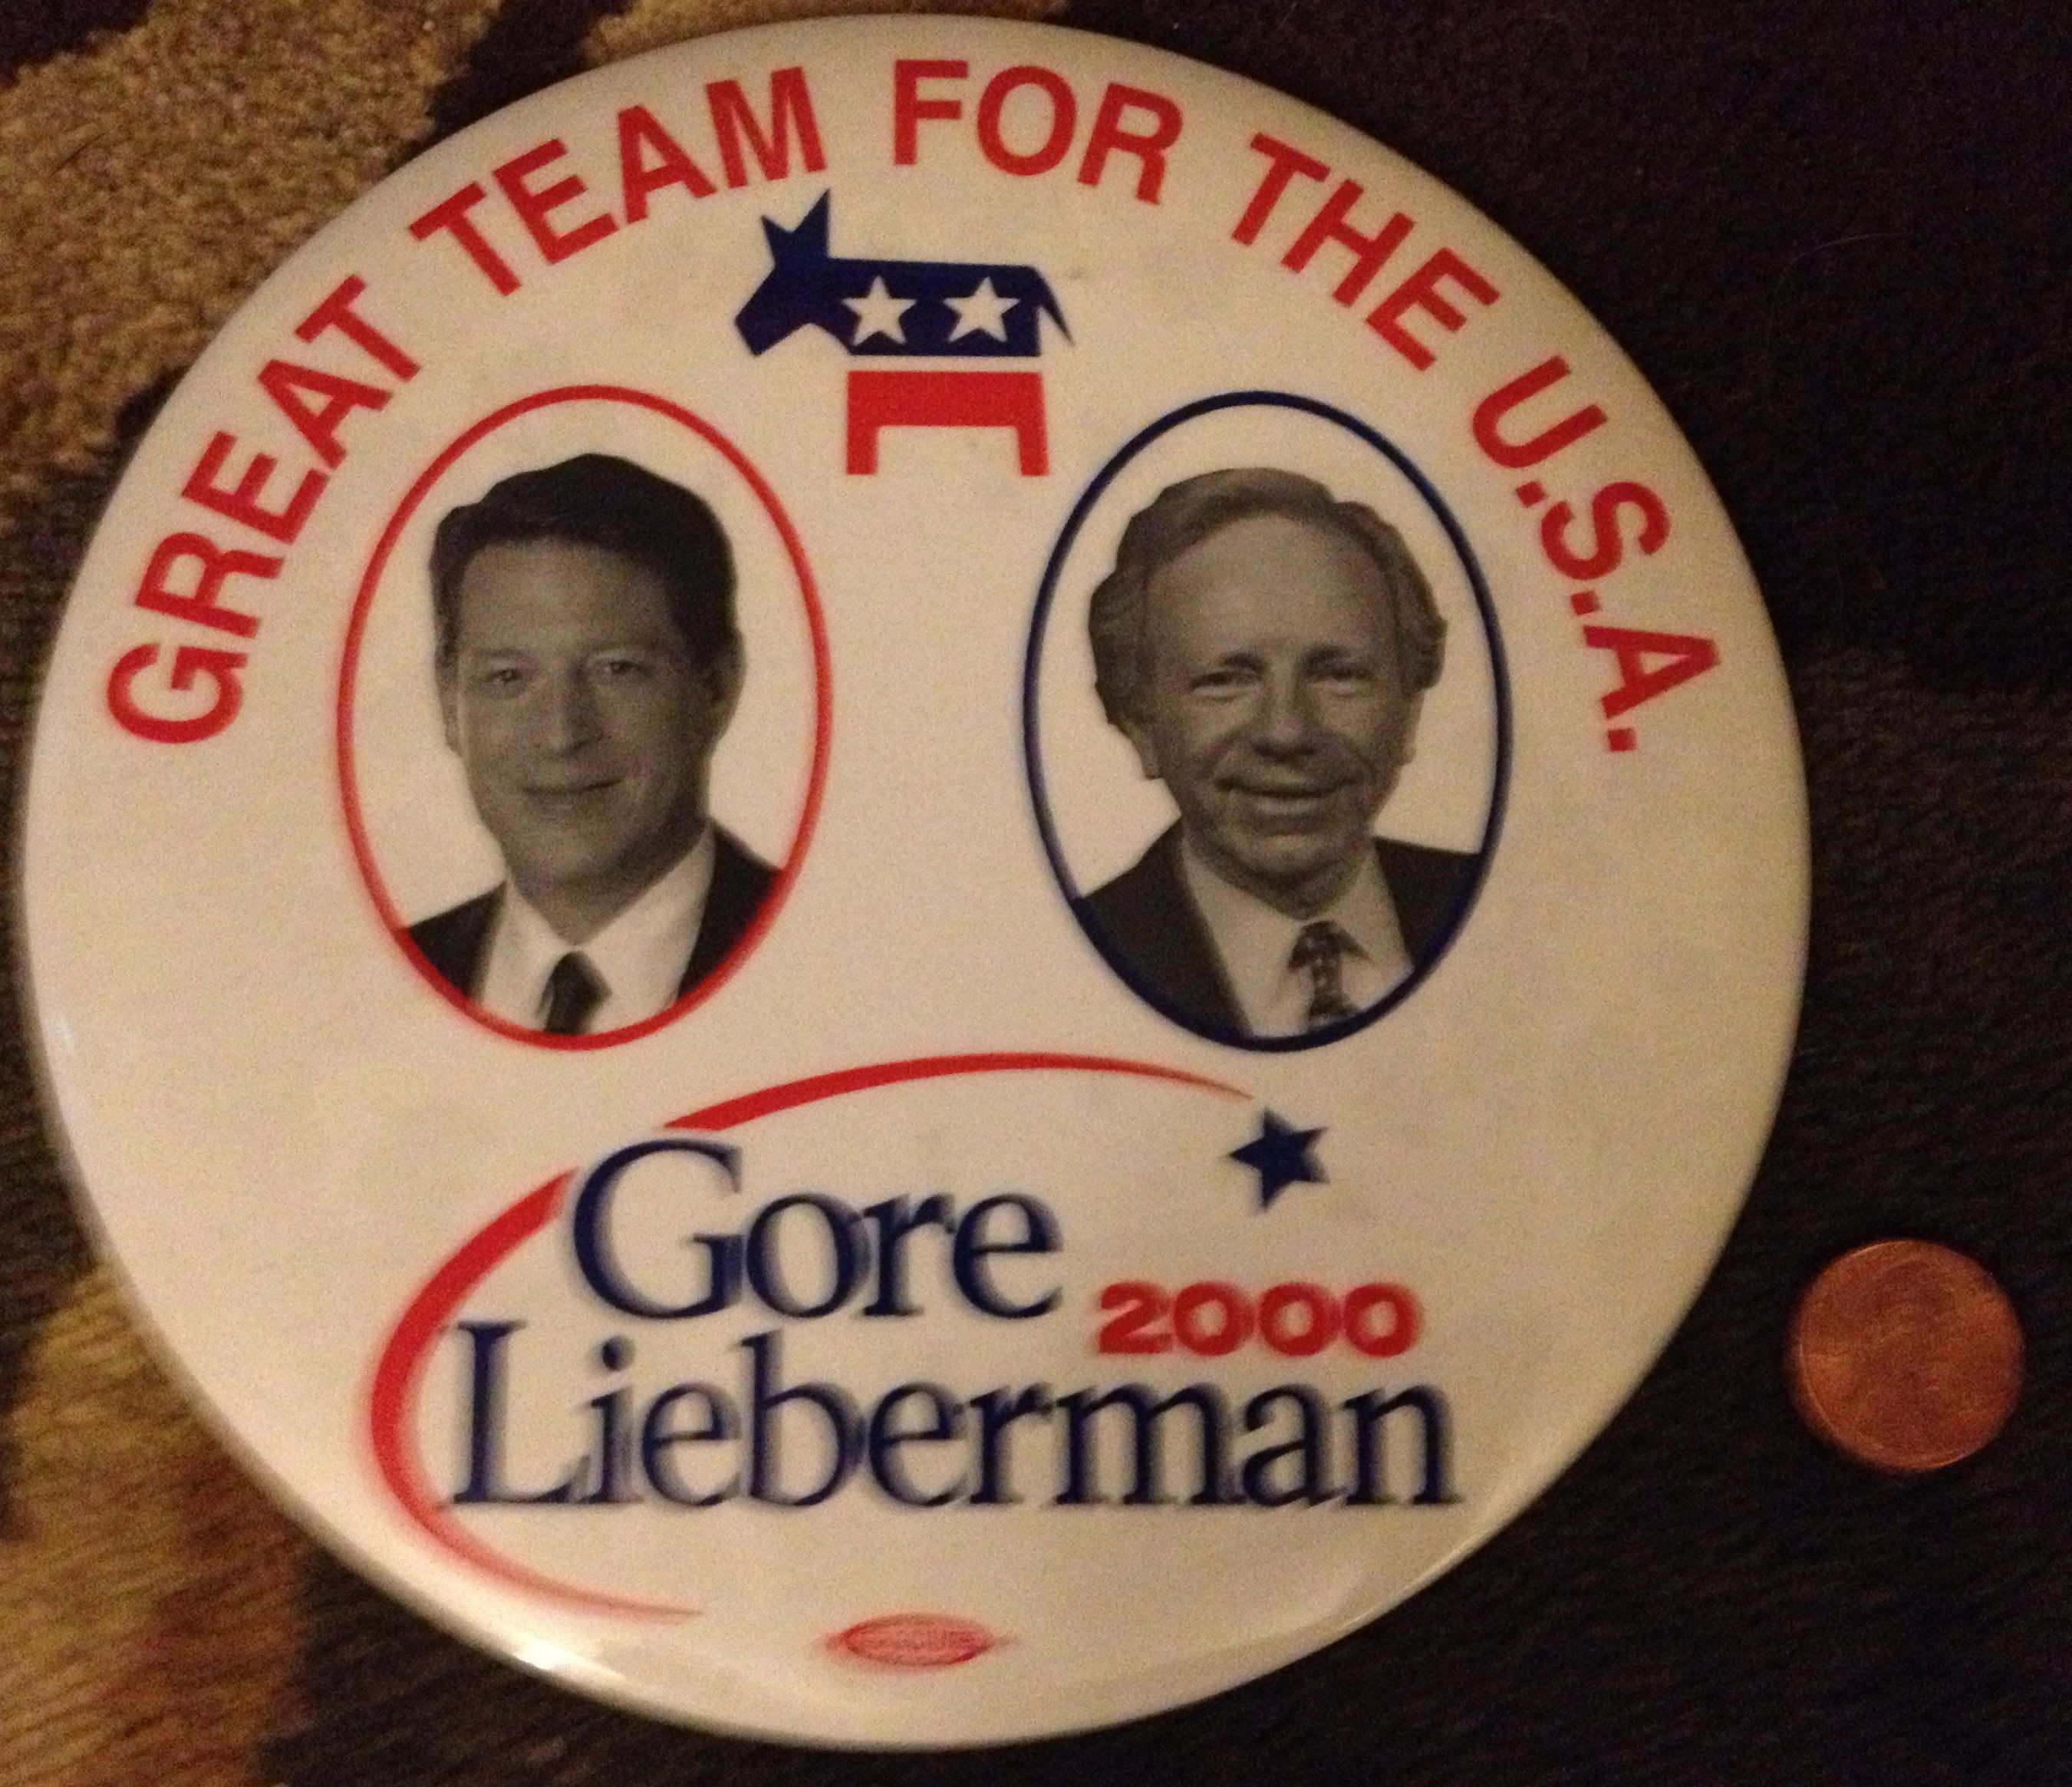 Gore Lieberman 2000: Great Team for the U.S.A. -- This is the largest button in my collection (see penny for scale), and is so big it has a small retractable stand on the back.